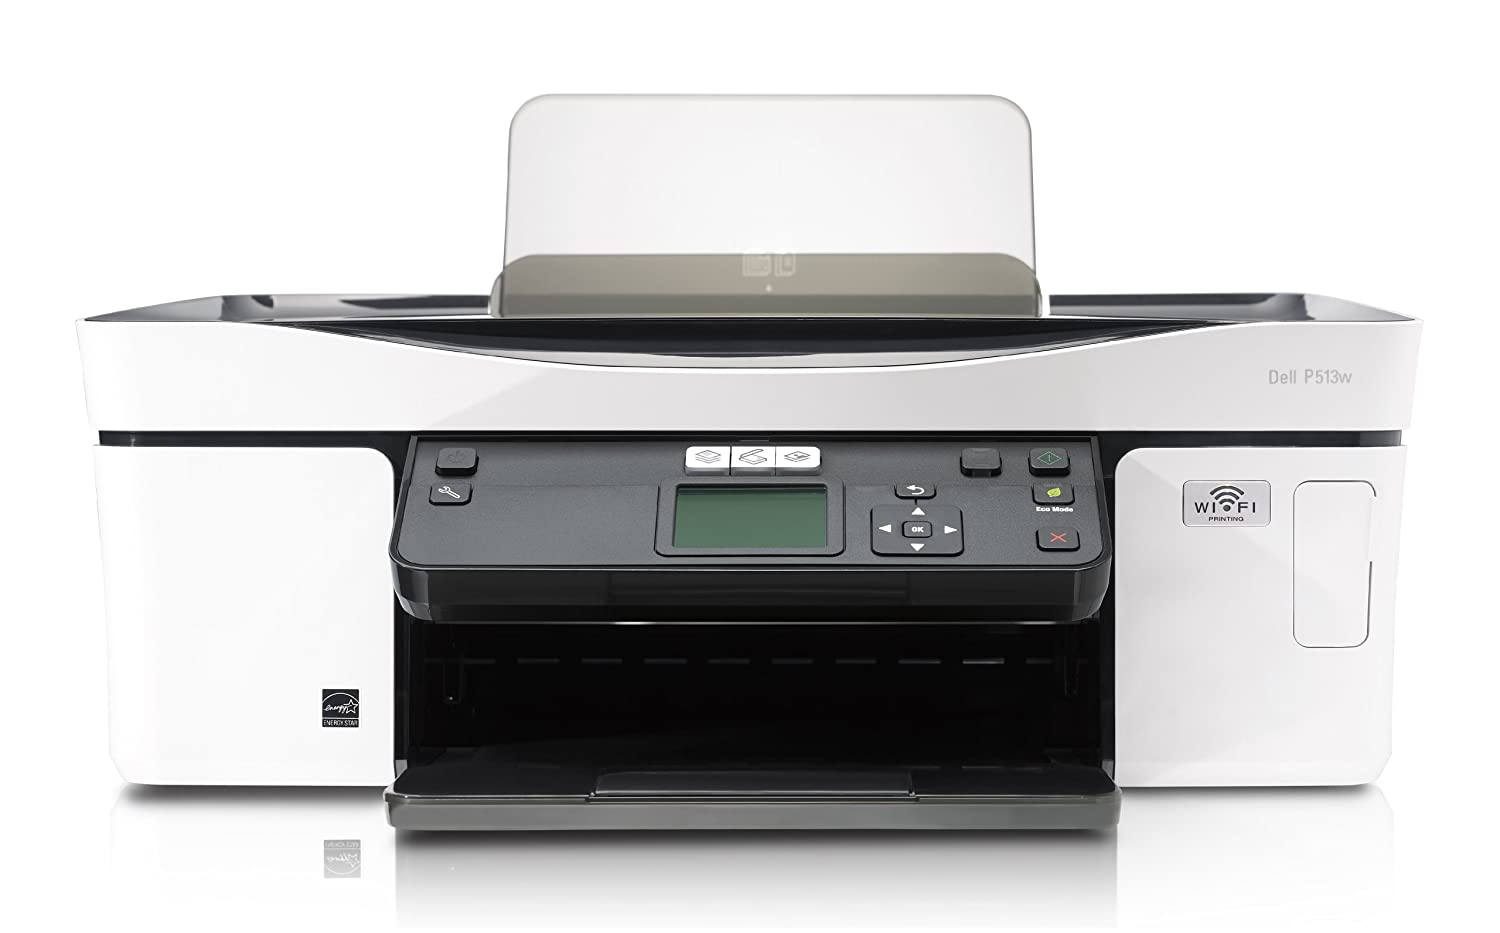 Dell Wireless Printer - The Best Printer